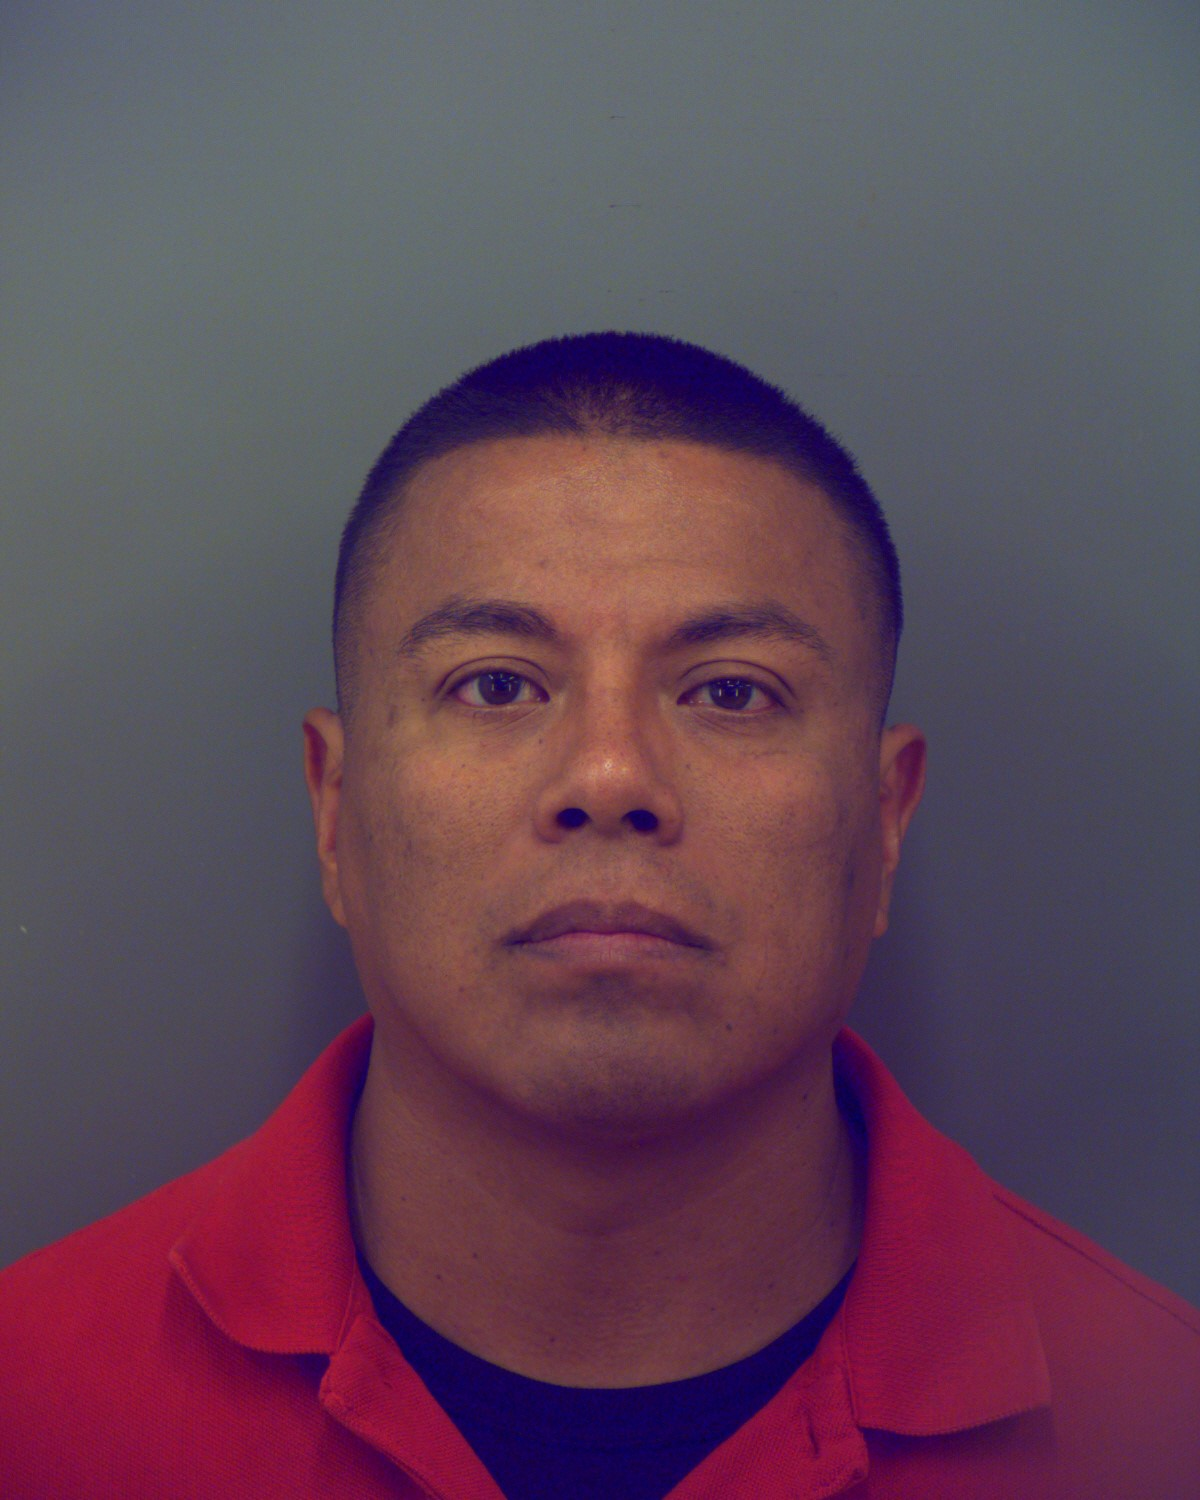 West Texas Man Arrested On Felony Warrant From 1998 While